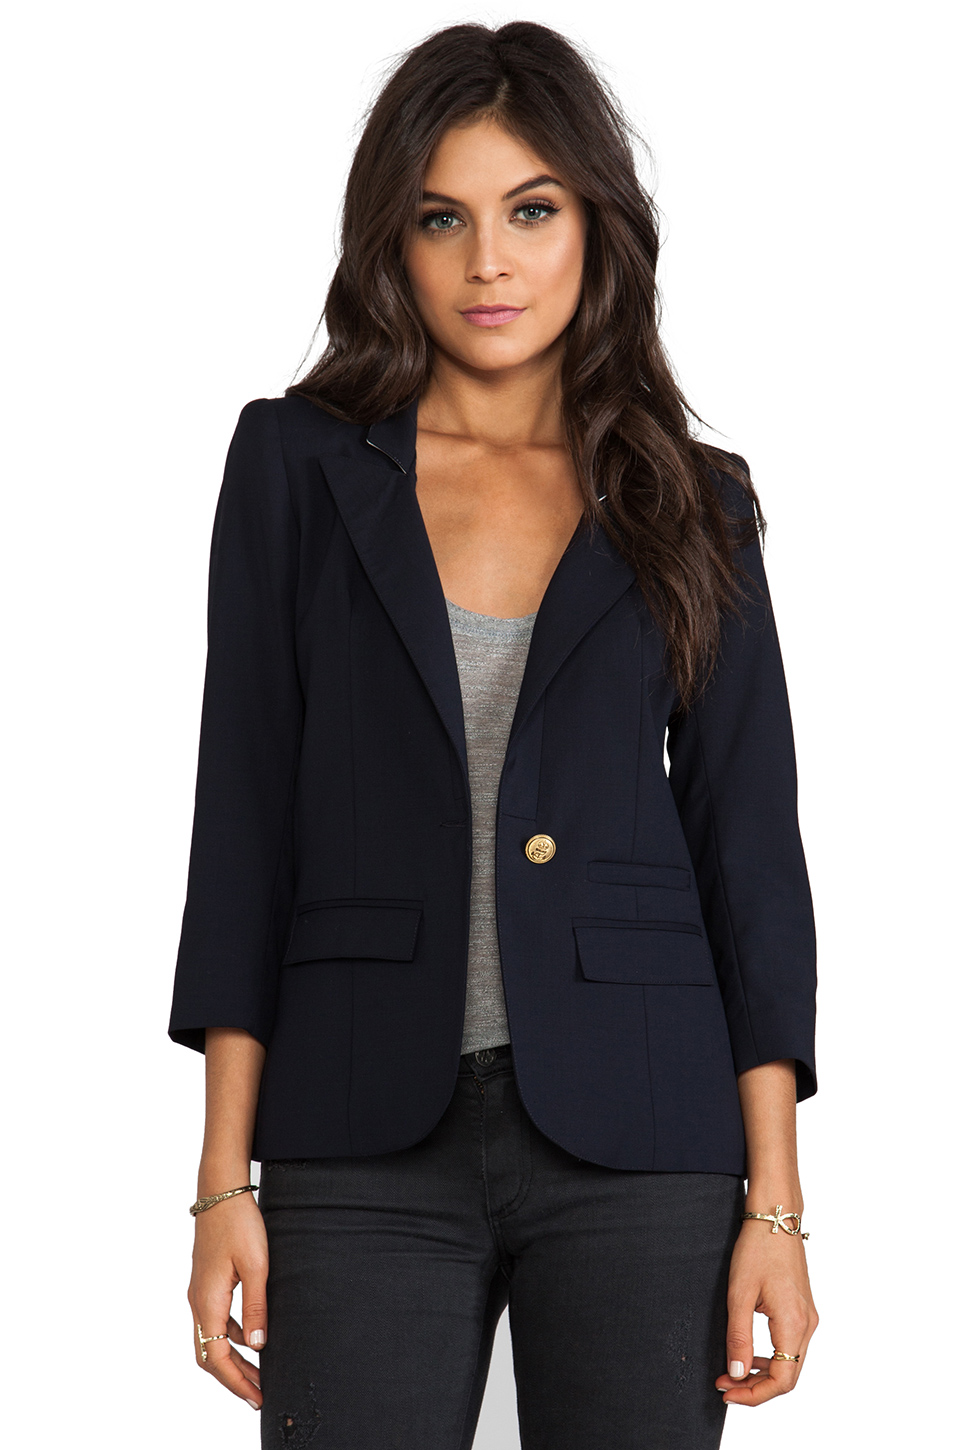 Smythe Flat Lapel Blazer in Navy at Revolve Clothing